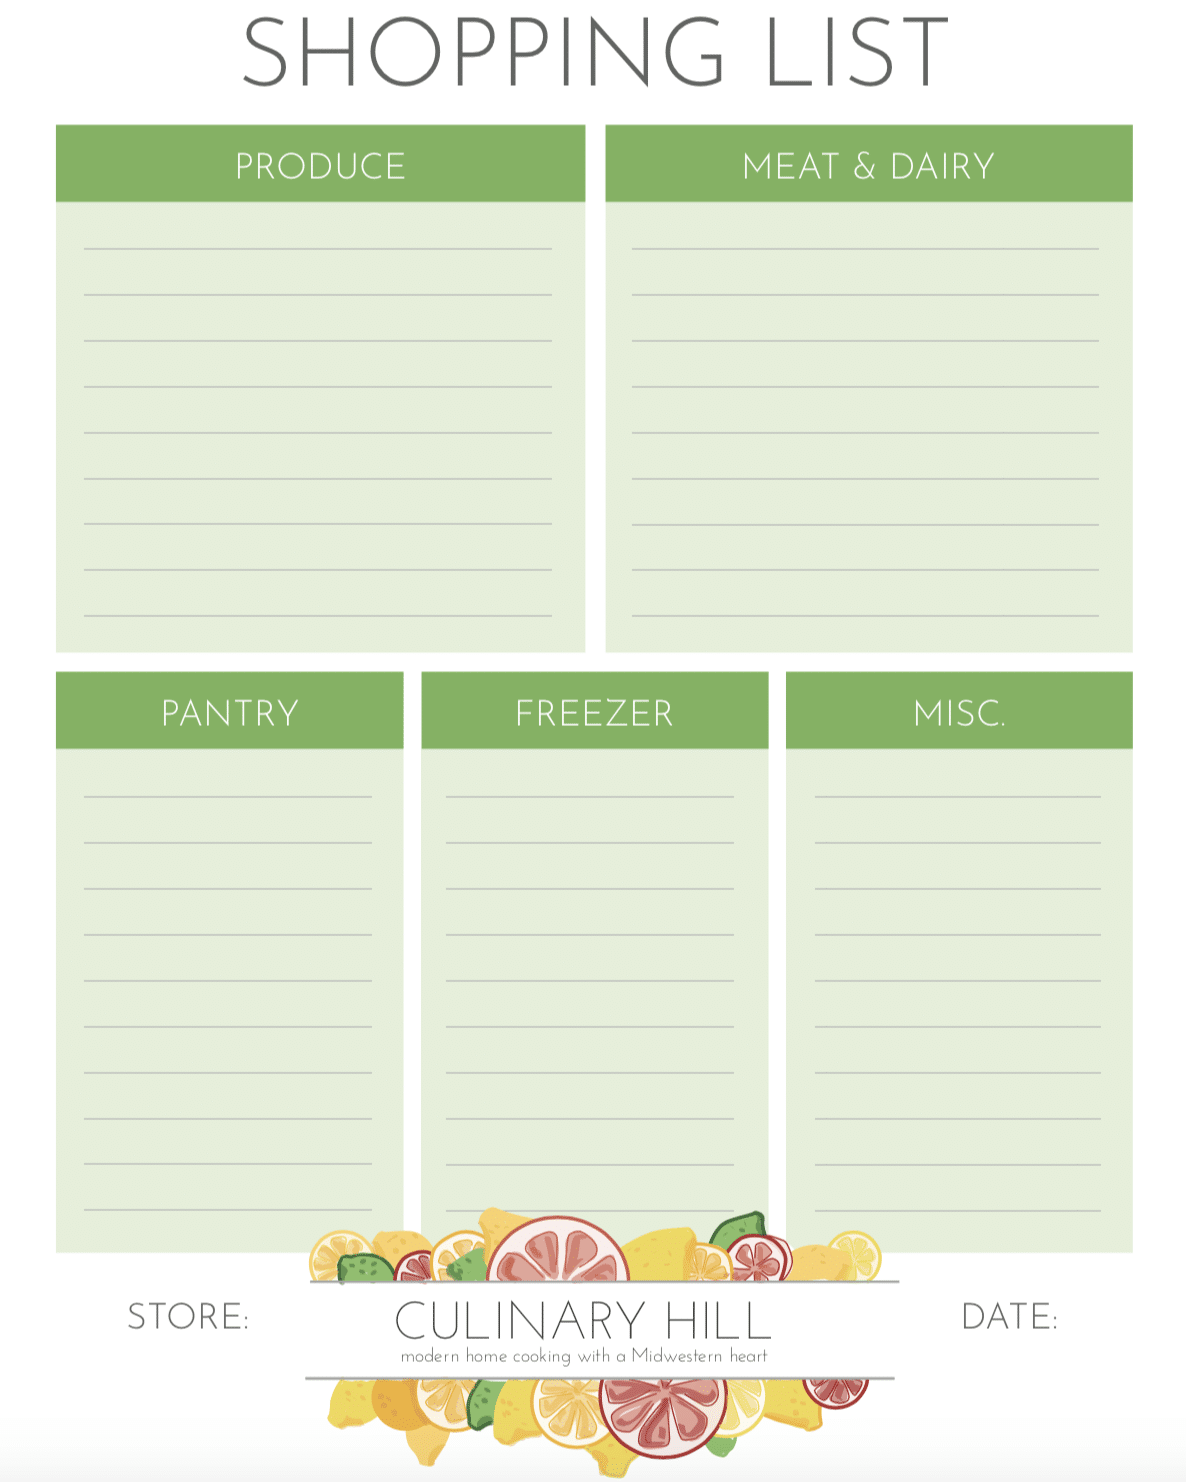 a picture of a shopping list template from CulinaryHill.com